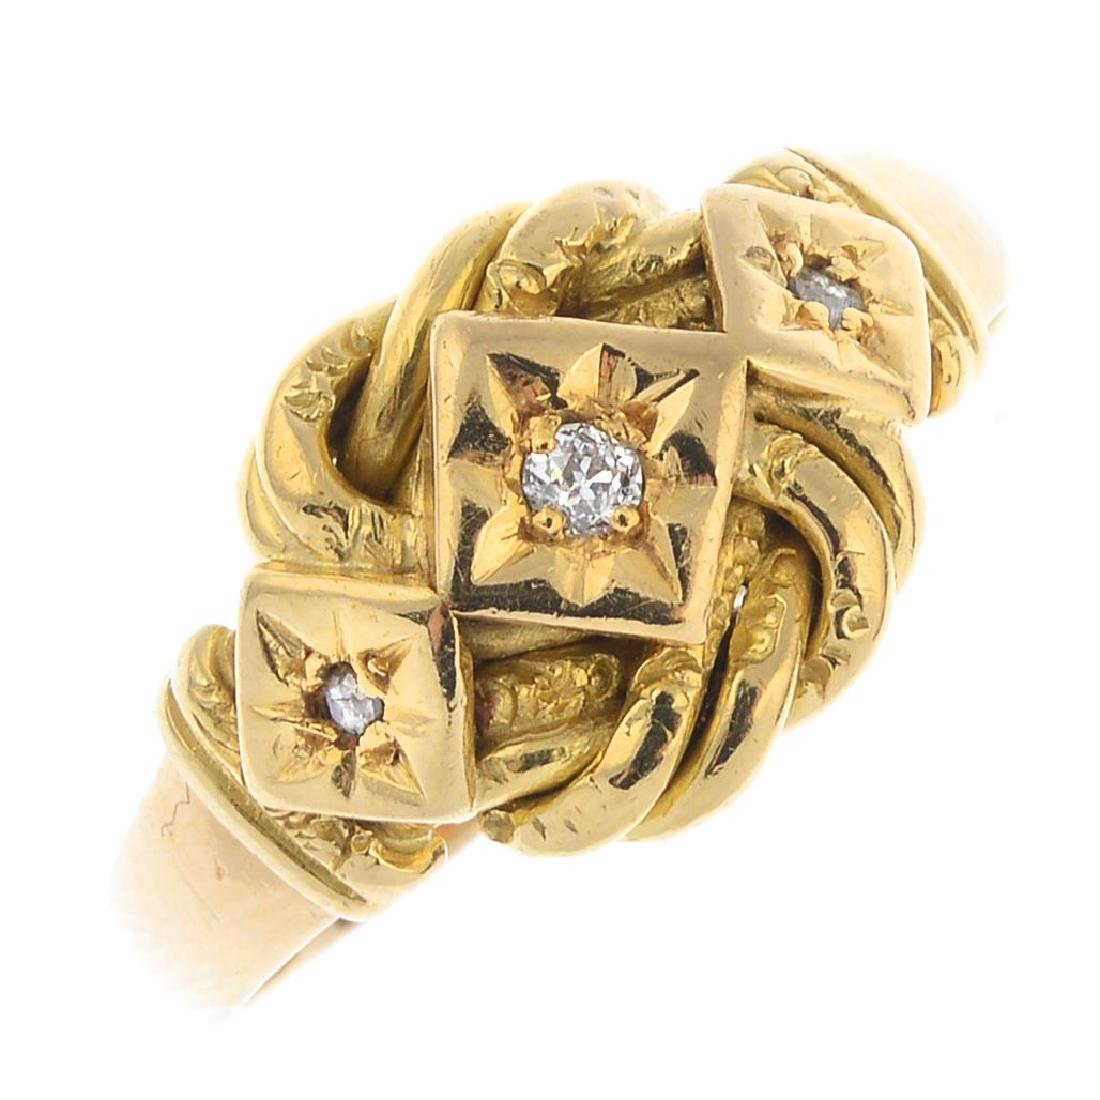 An early 20th century 18ct gold diamond ring. Designed